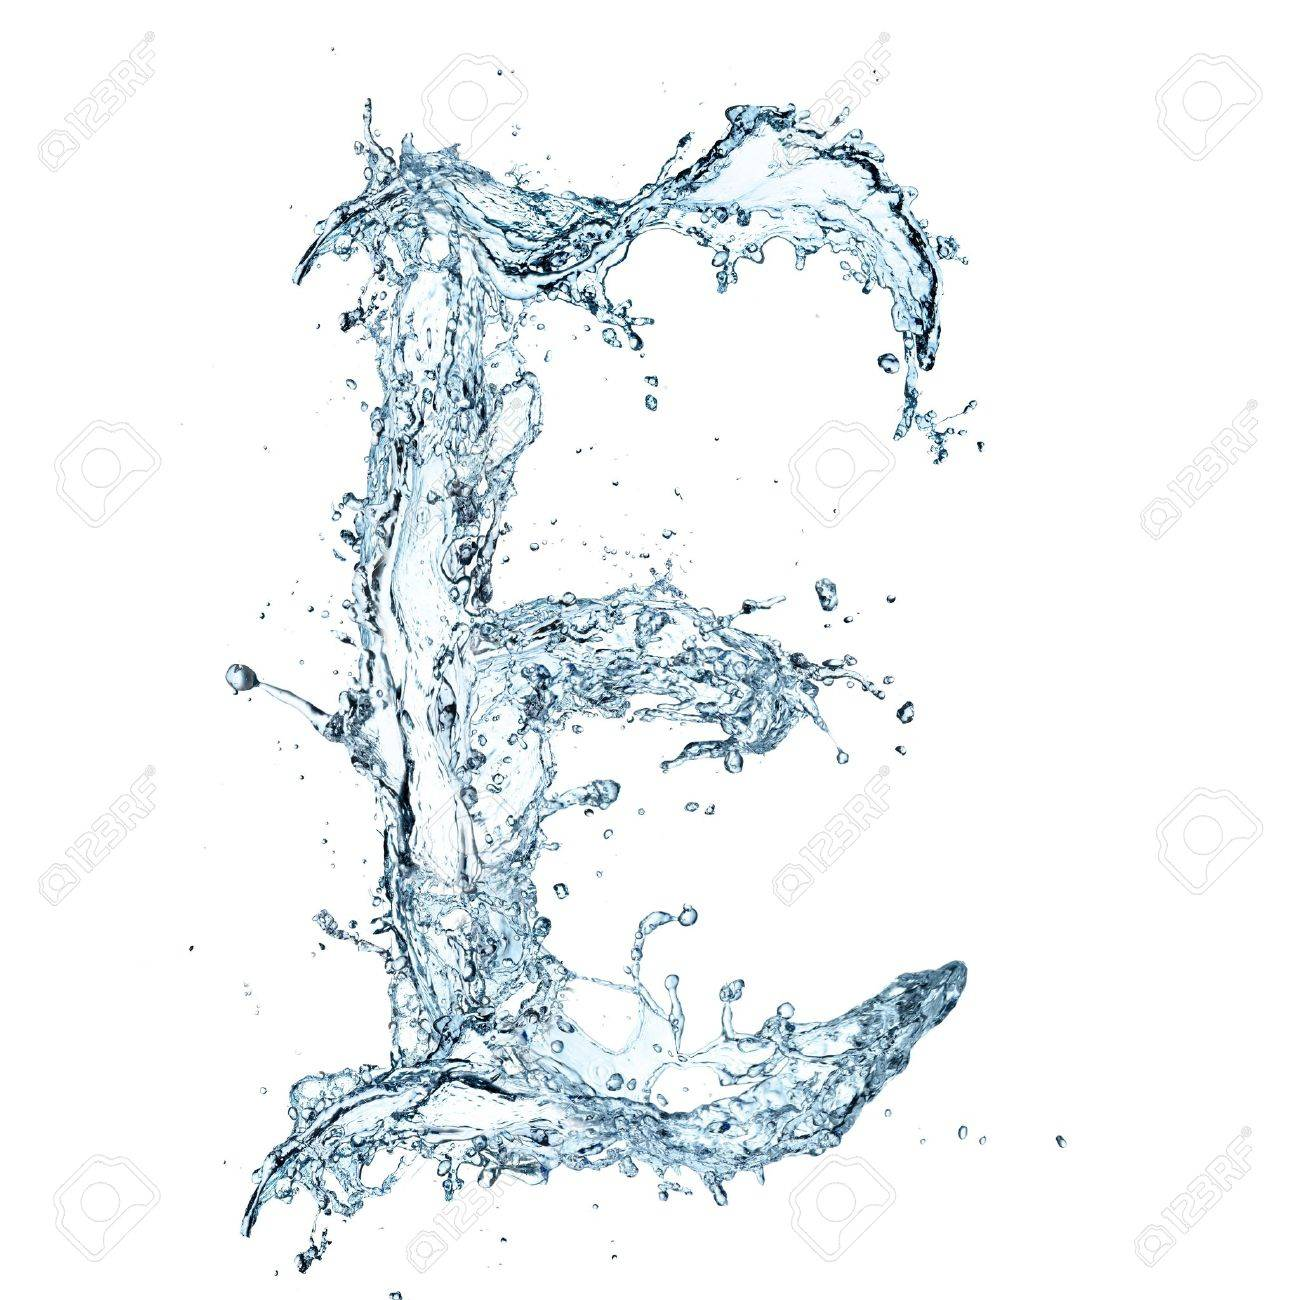 Letter of water alphabet Stock Photo - 16196790